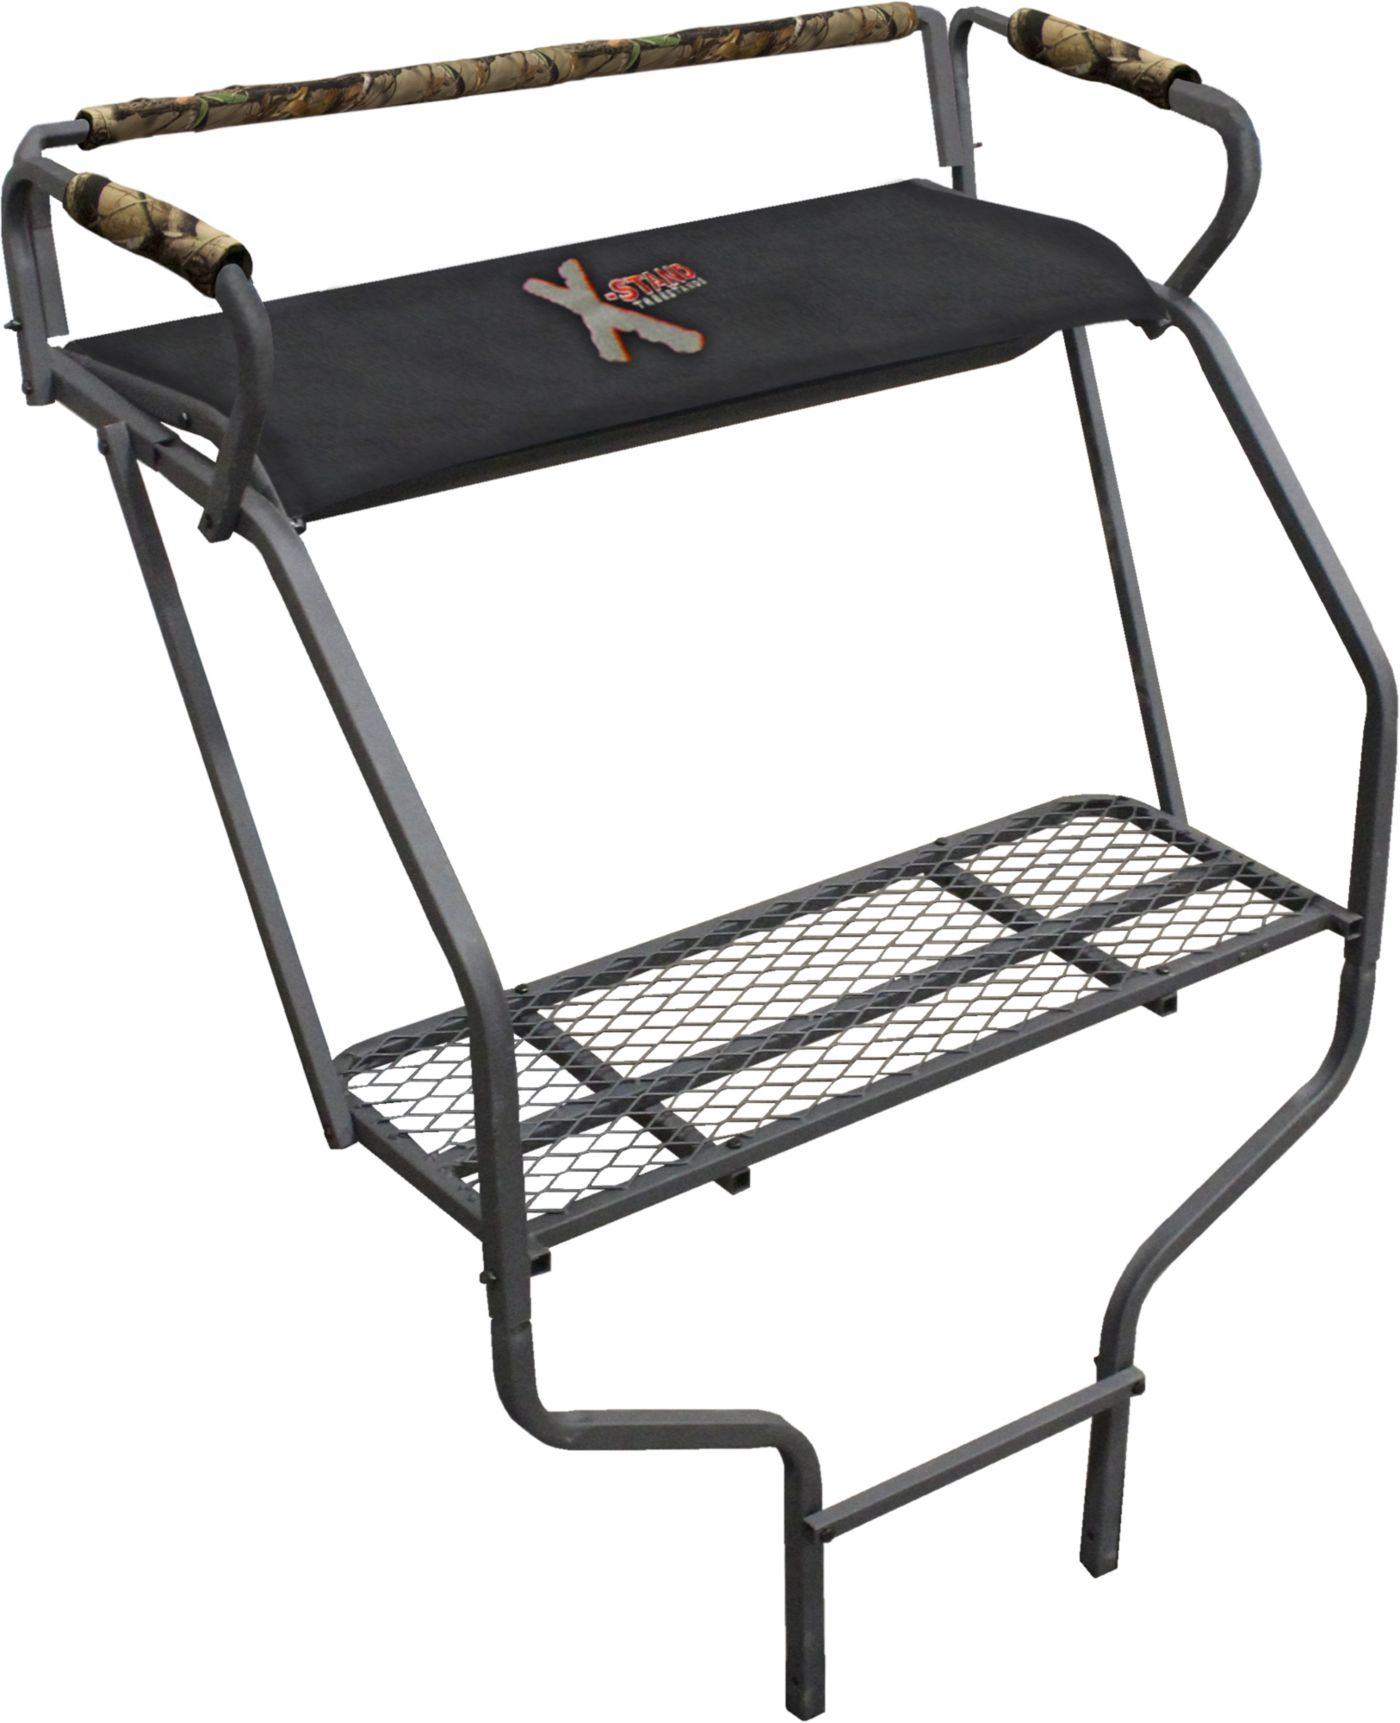 X-Stand Max XL 1.75 15' Ladder Stand